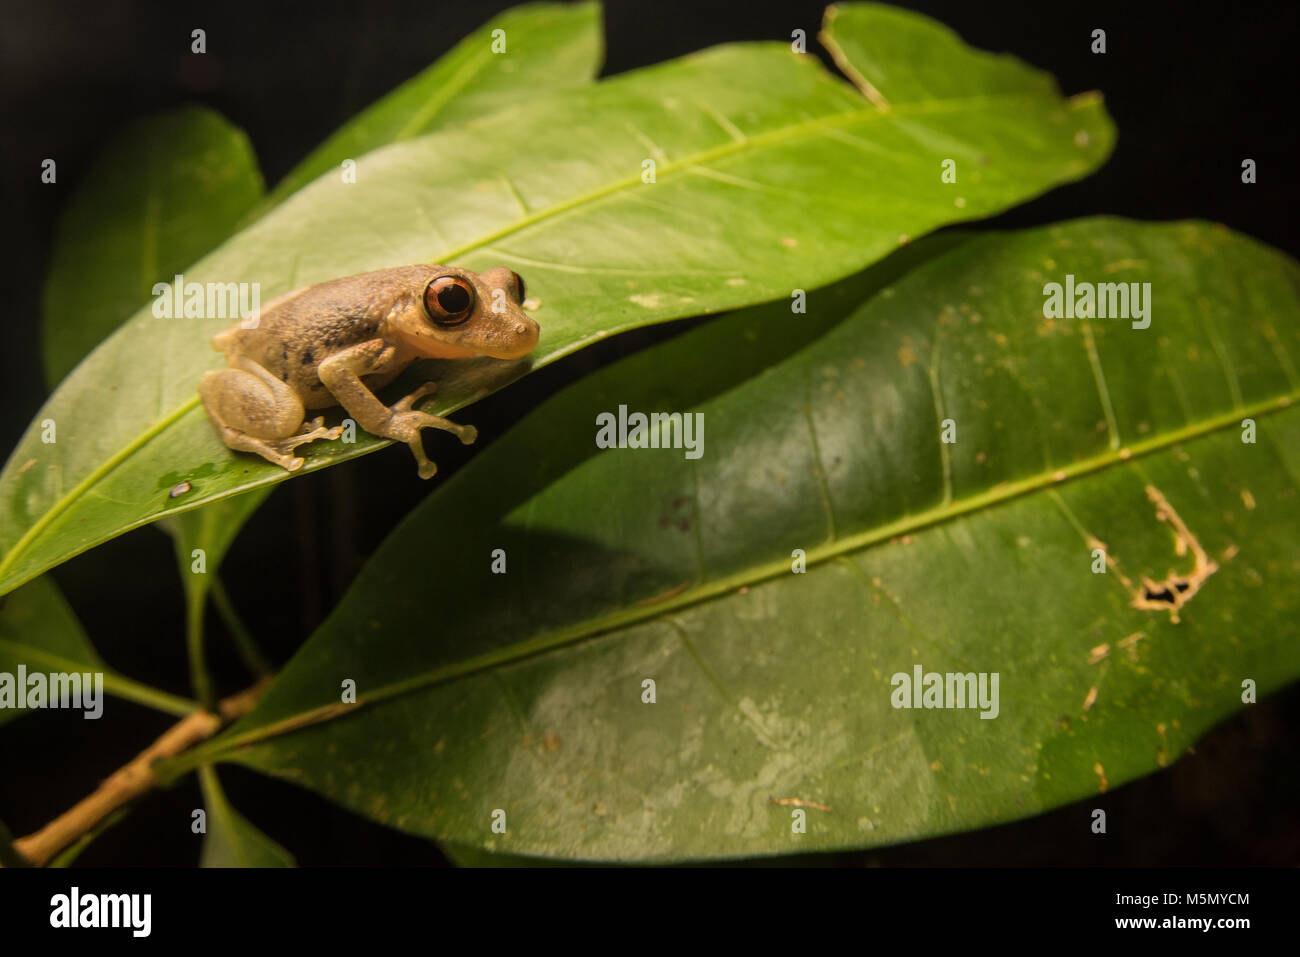 A small neotropical tree frog from the Scinax genus. - Stock Image